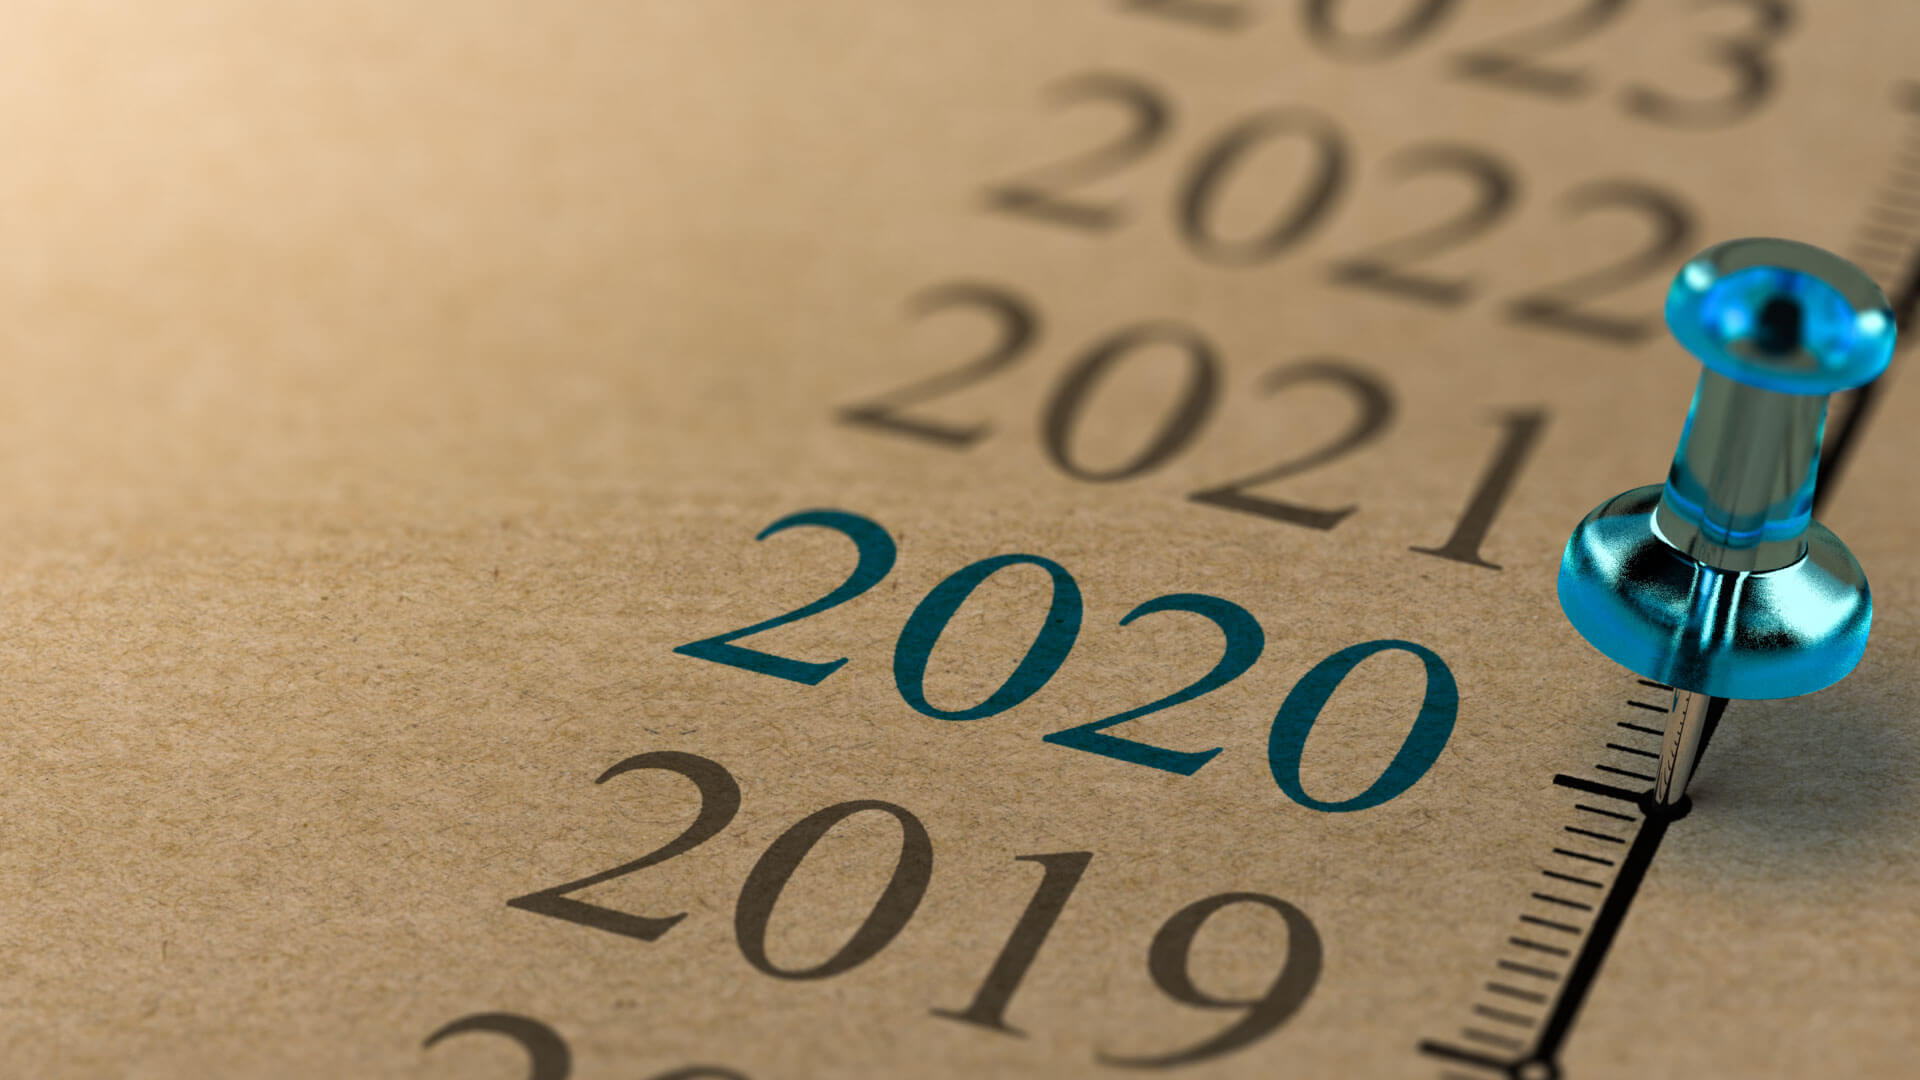 ask-2020